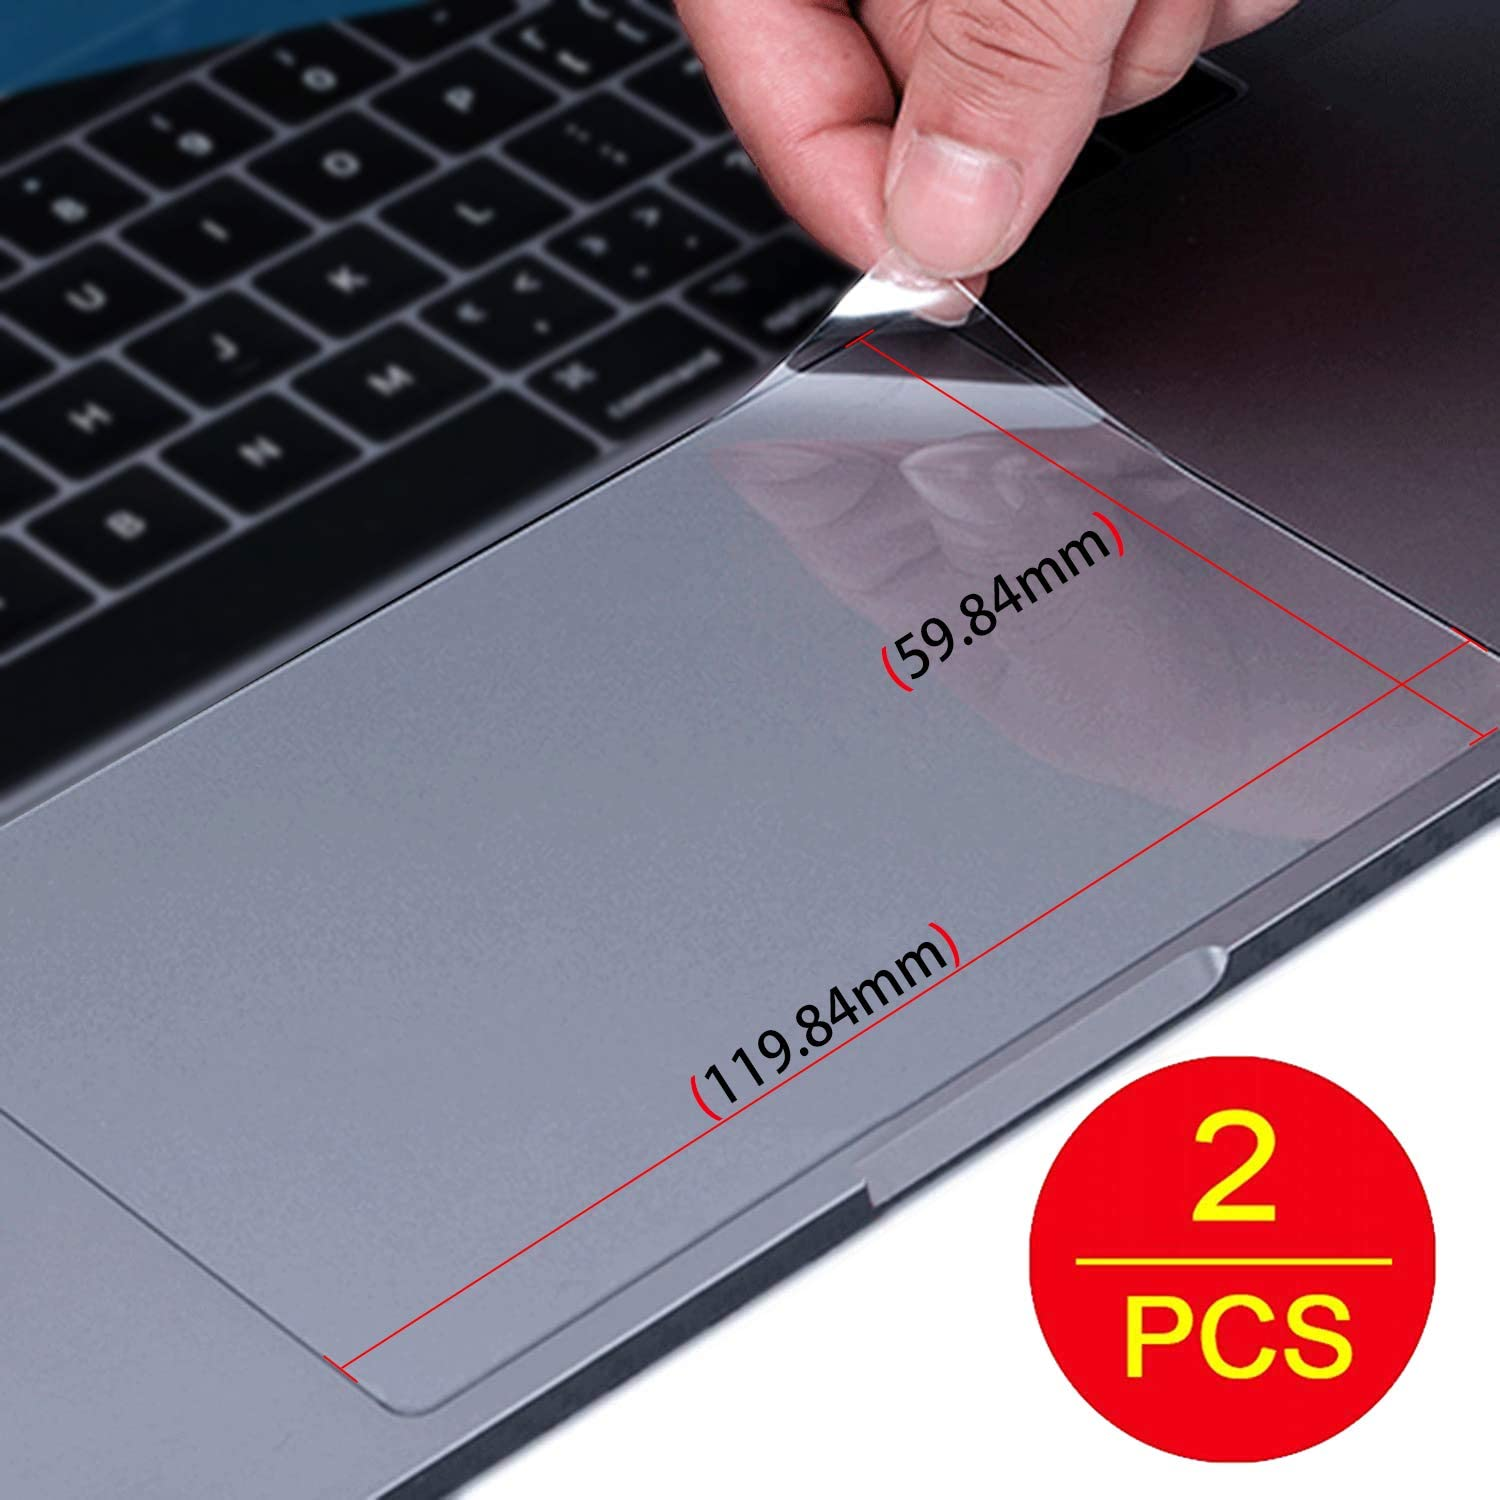 Lapogy [2PCS] Keyboard Trackpad Protector Cover for HP Envy x360/pavilion X360 15.6 inch Keyboard Accessories,Keyboard Protector, Clear